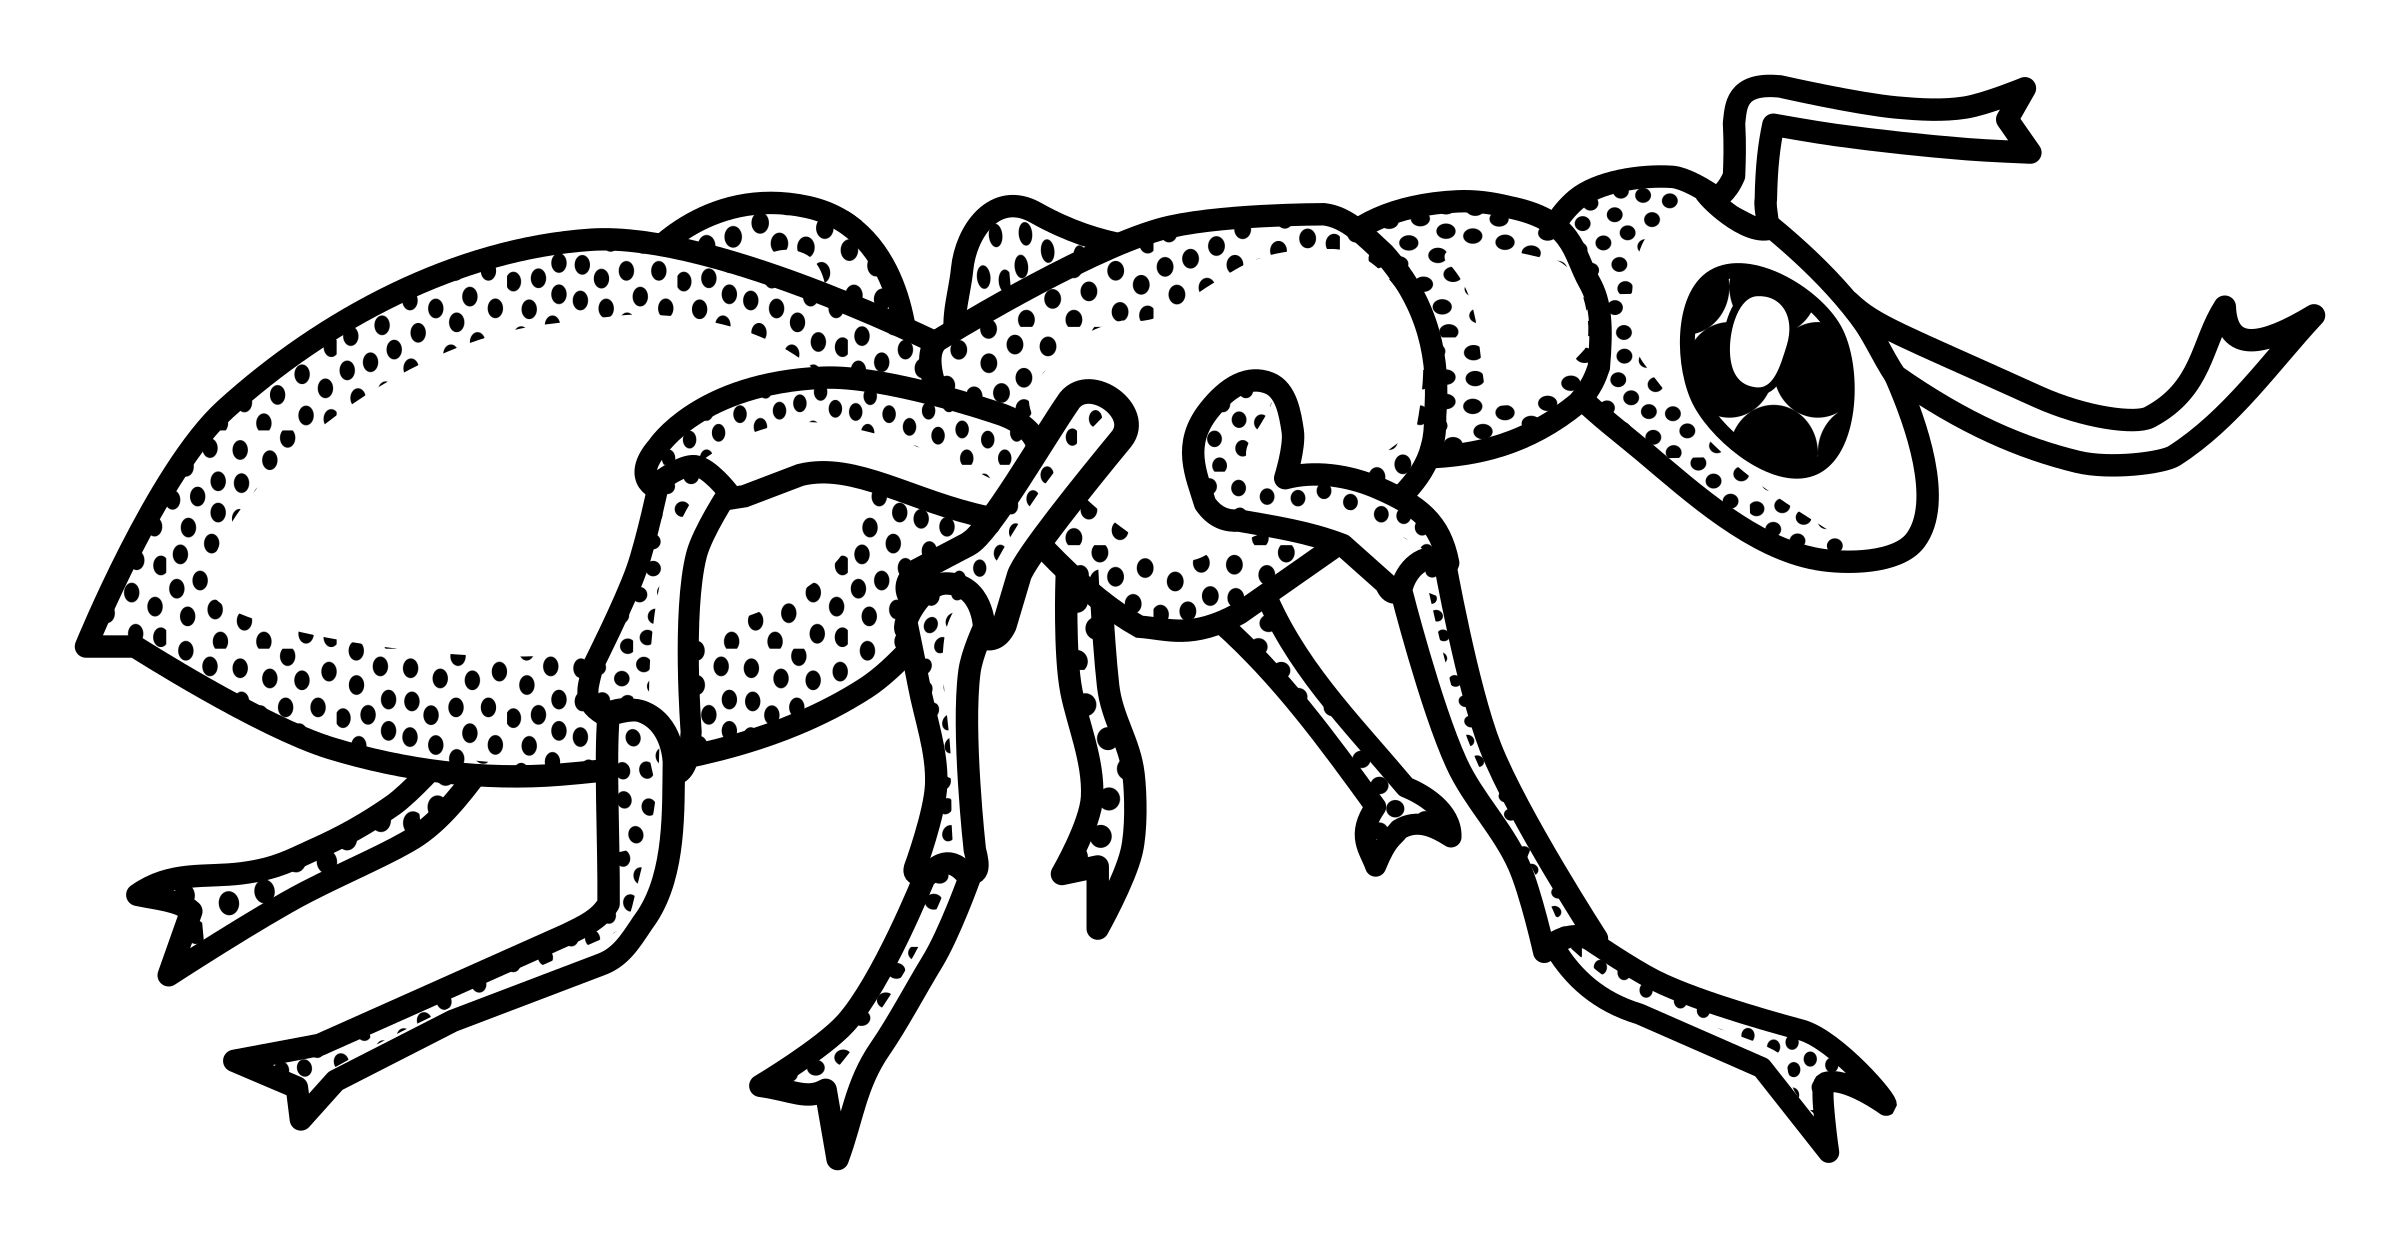 Ant drawing png. Lineart icons free and